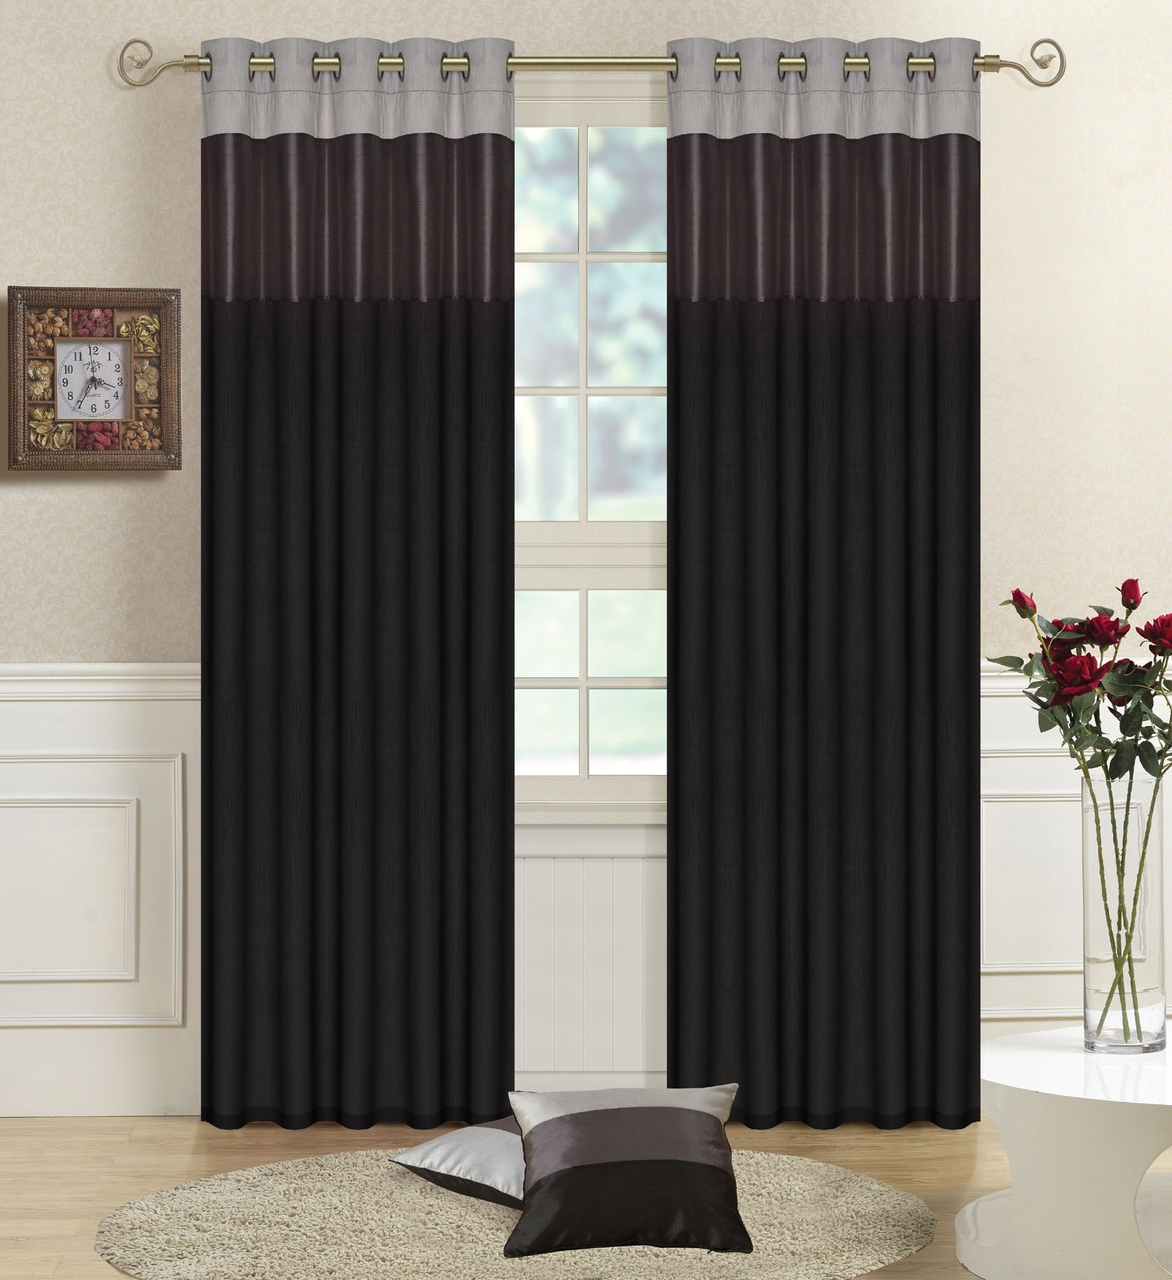 Details About Black Greysilver Faux Silk Three Tone Fully Lined In Silky Curtains (Image 6 of 15)